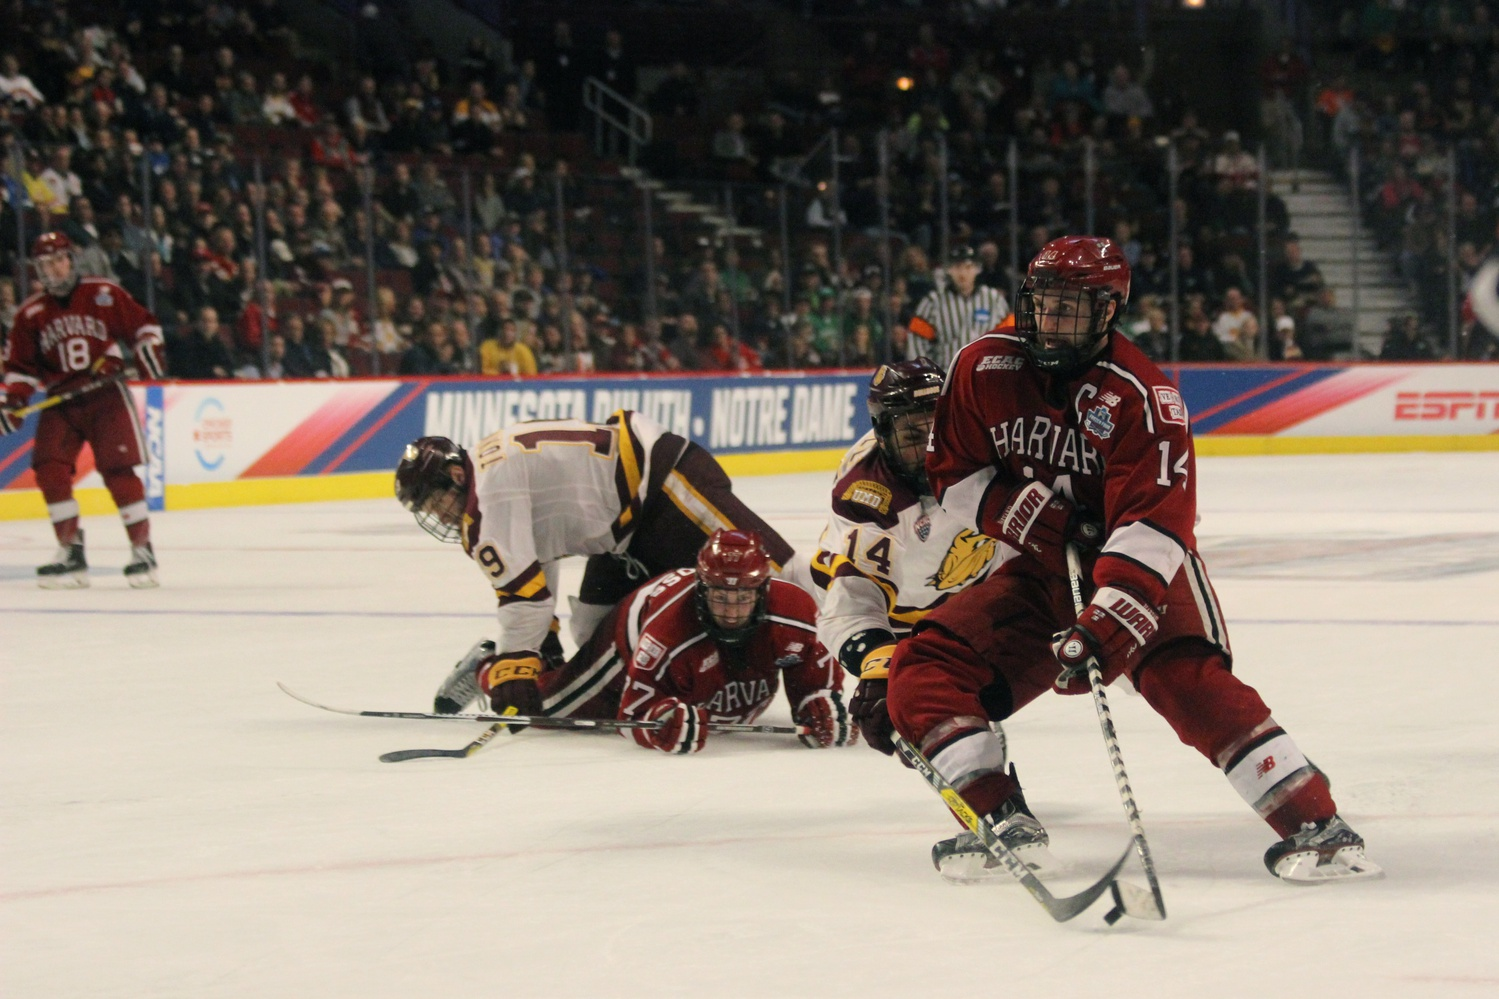 Senior forward Alexander Kerfoot escapes the Minnesota-Duluth defense.